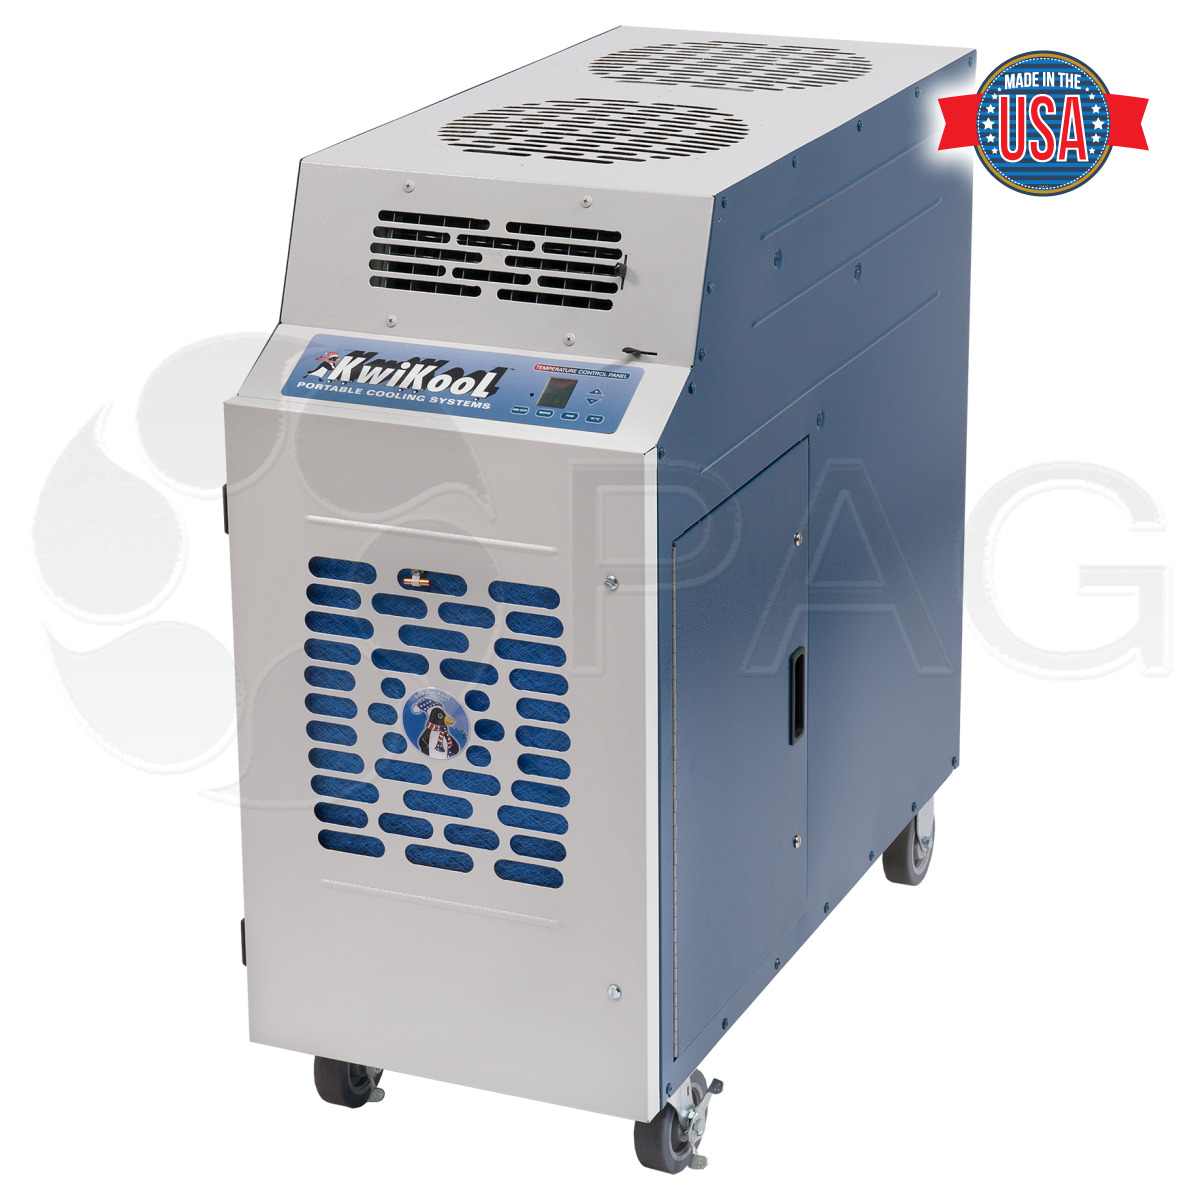 KwiKool KPHP2211 Portable Heat Pump as sold with no accessories